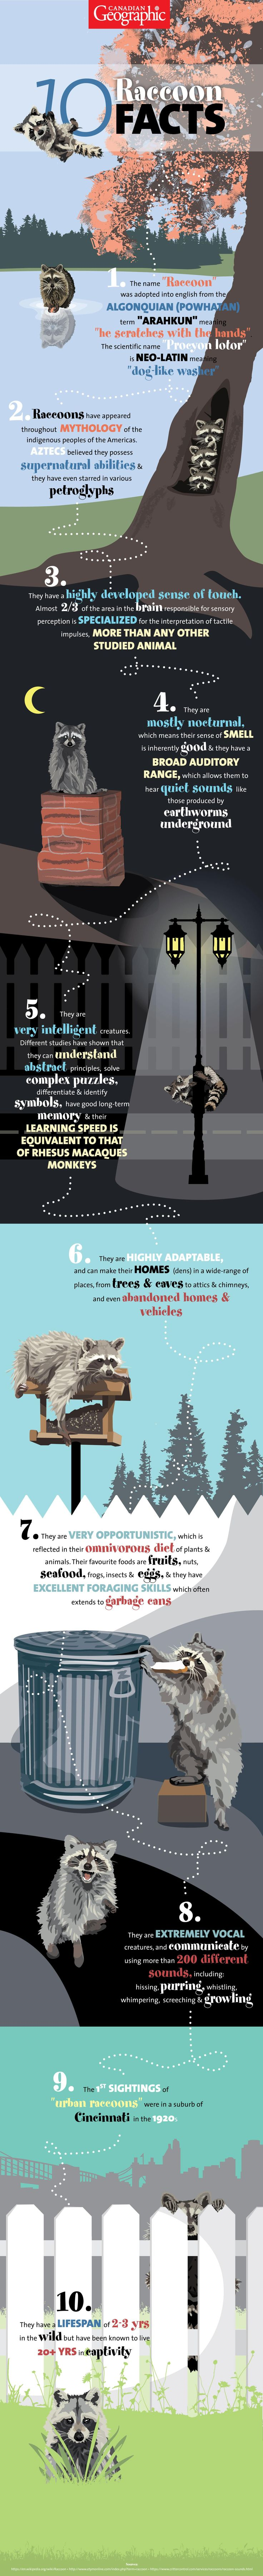 10 fascinating facts about raccoons